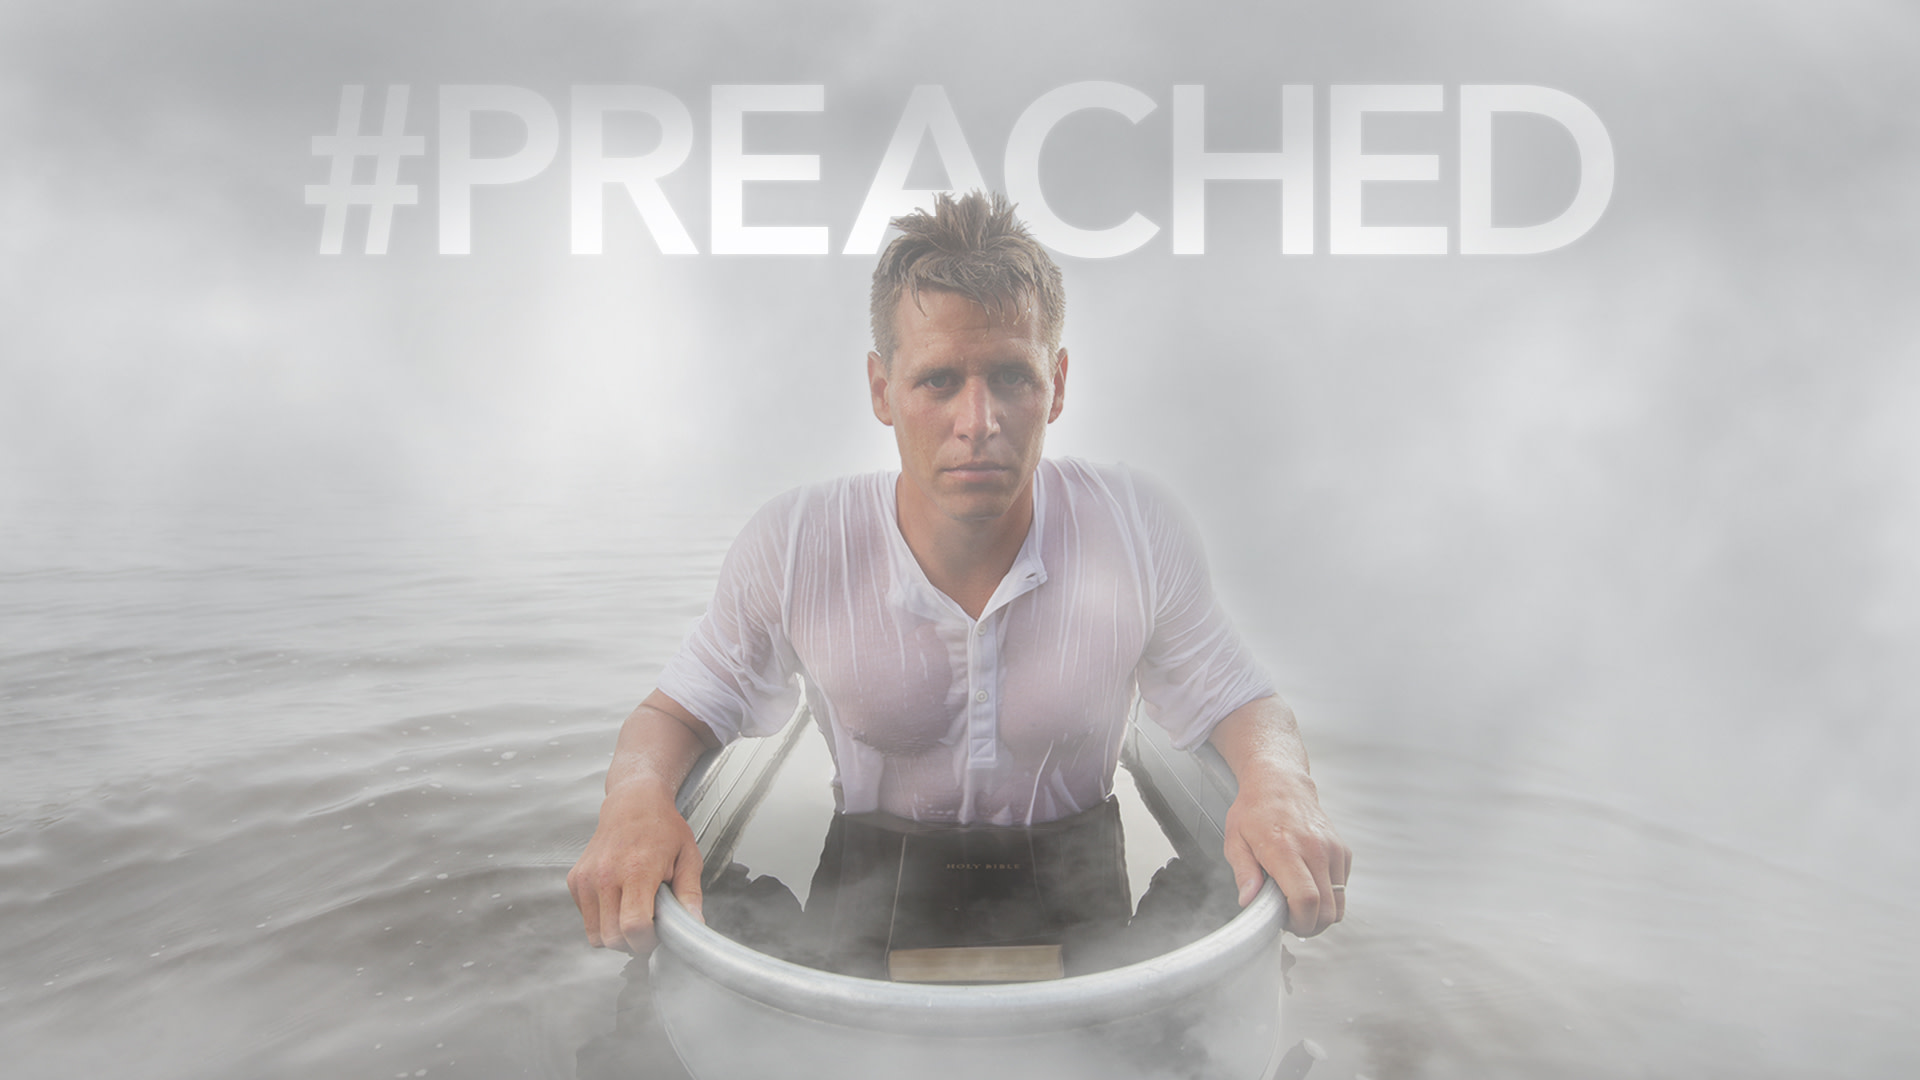 #Preached